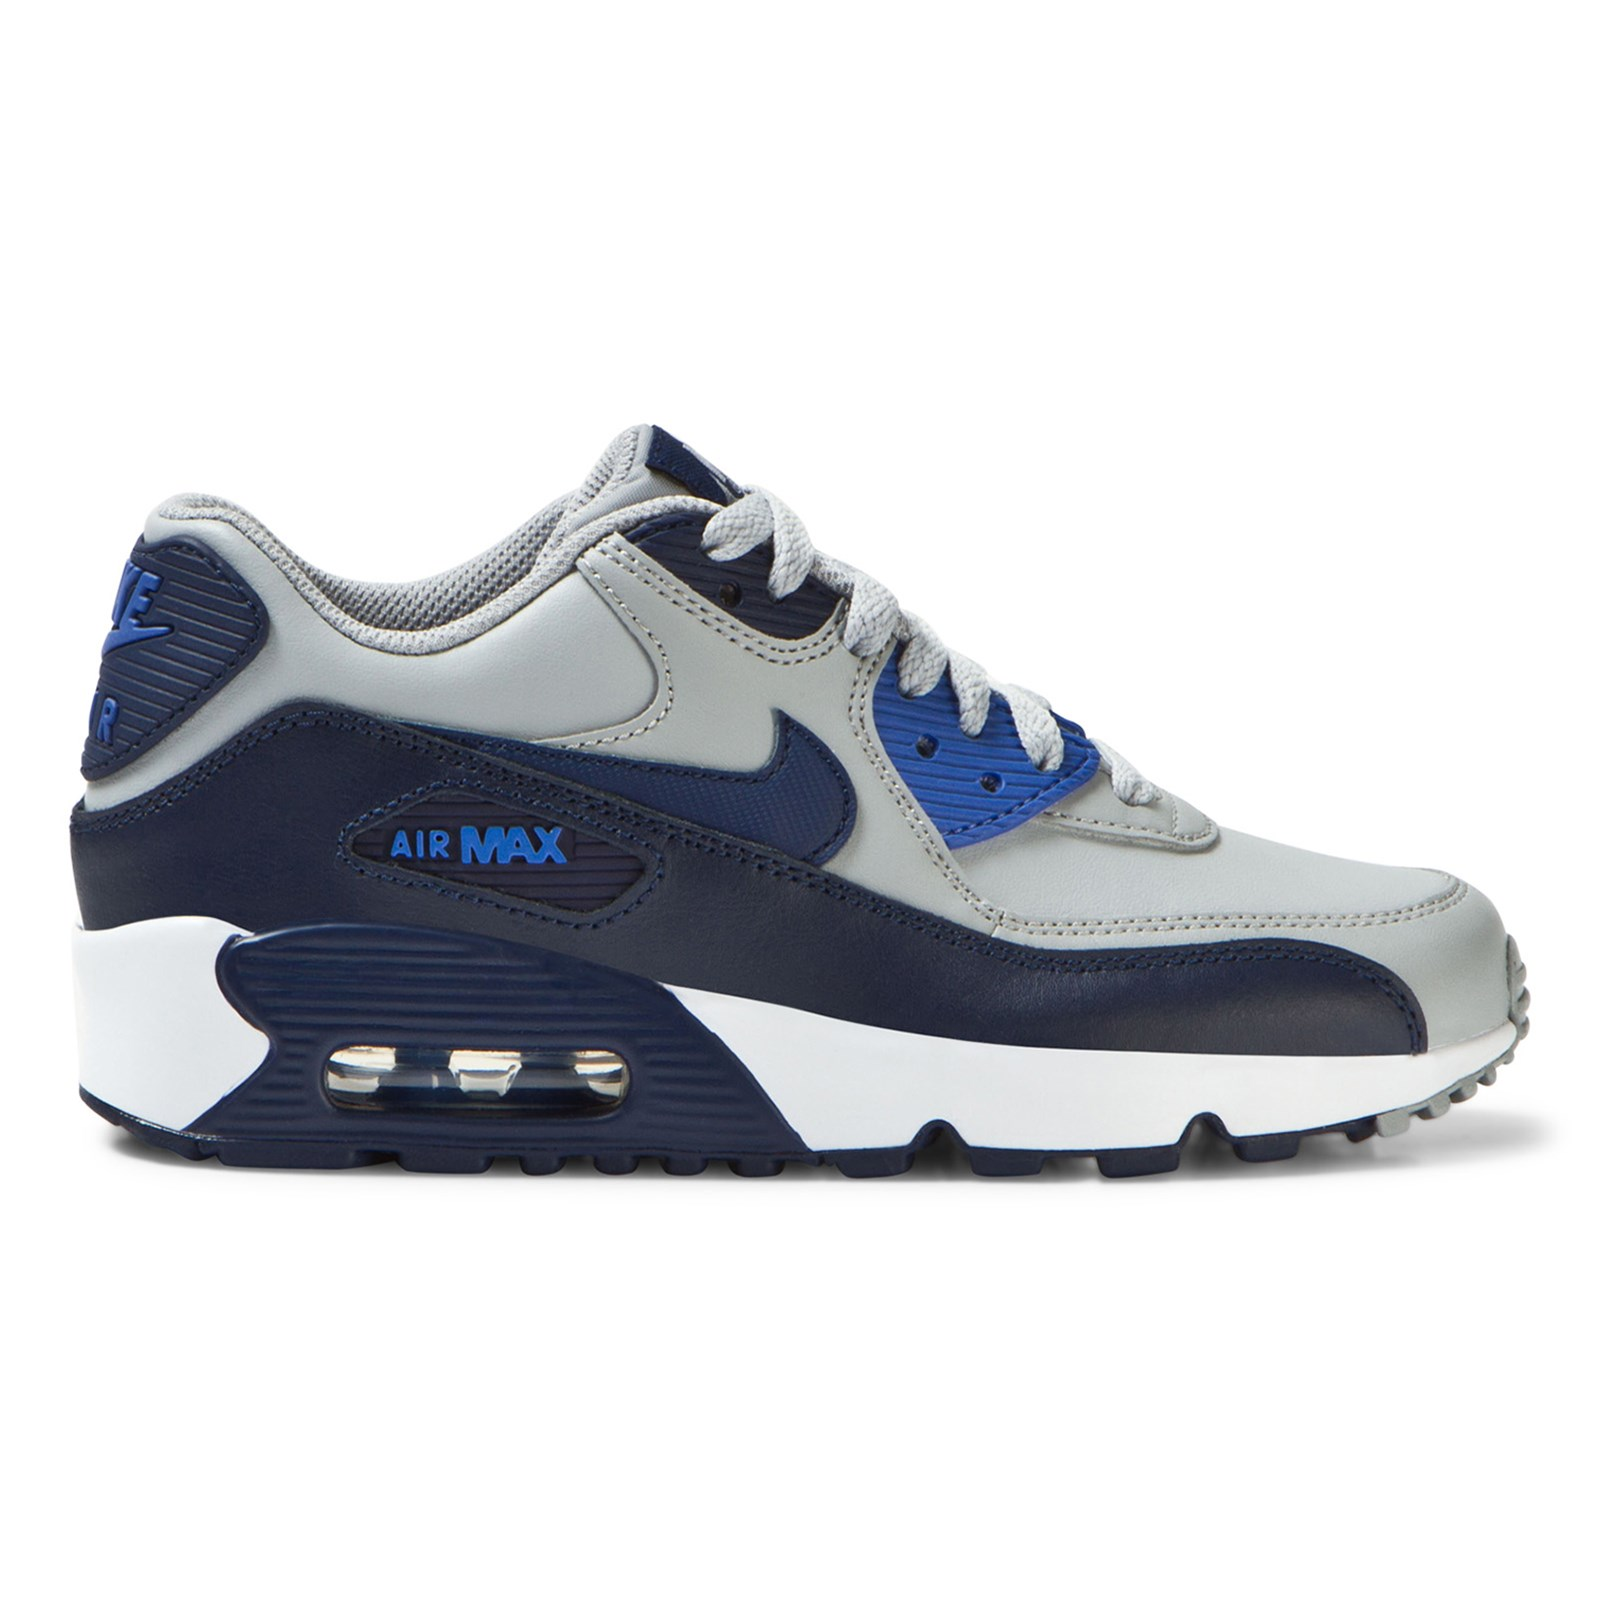 NIKE - Grey and Blue Air Max 90 Leather Junior Trainers - Babyshop.com